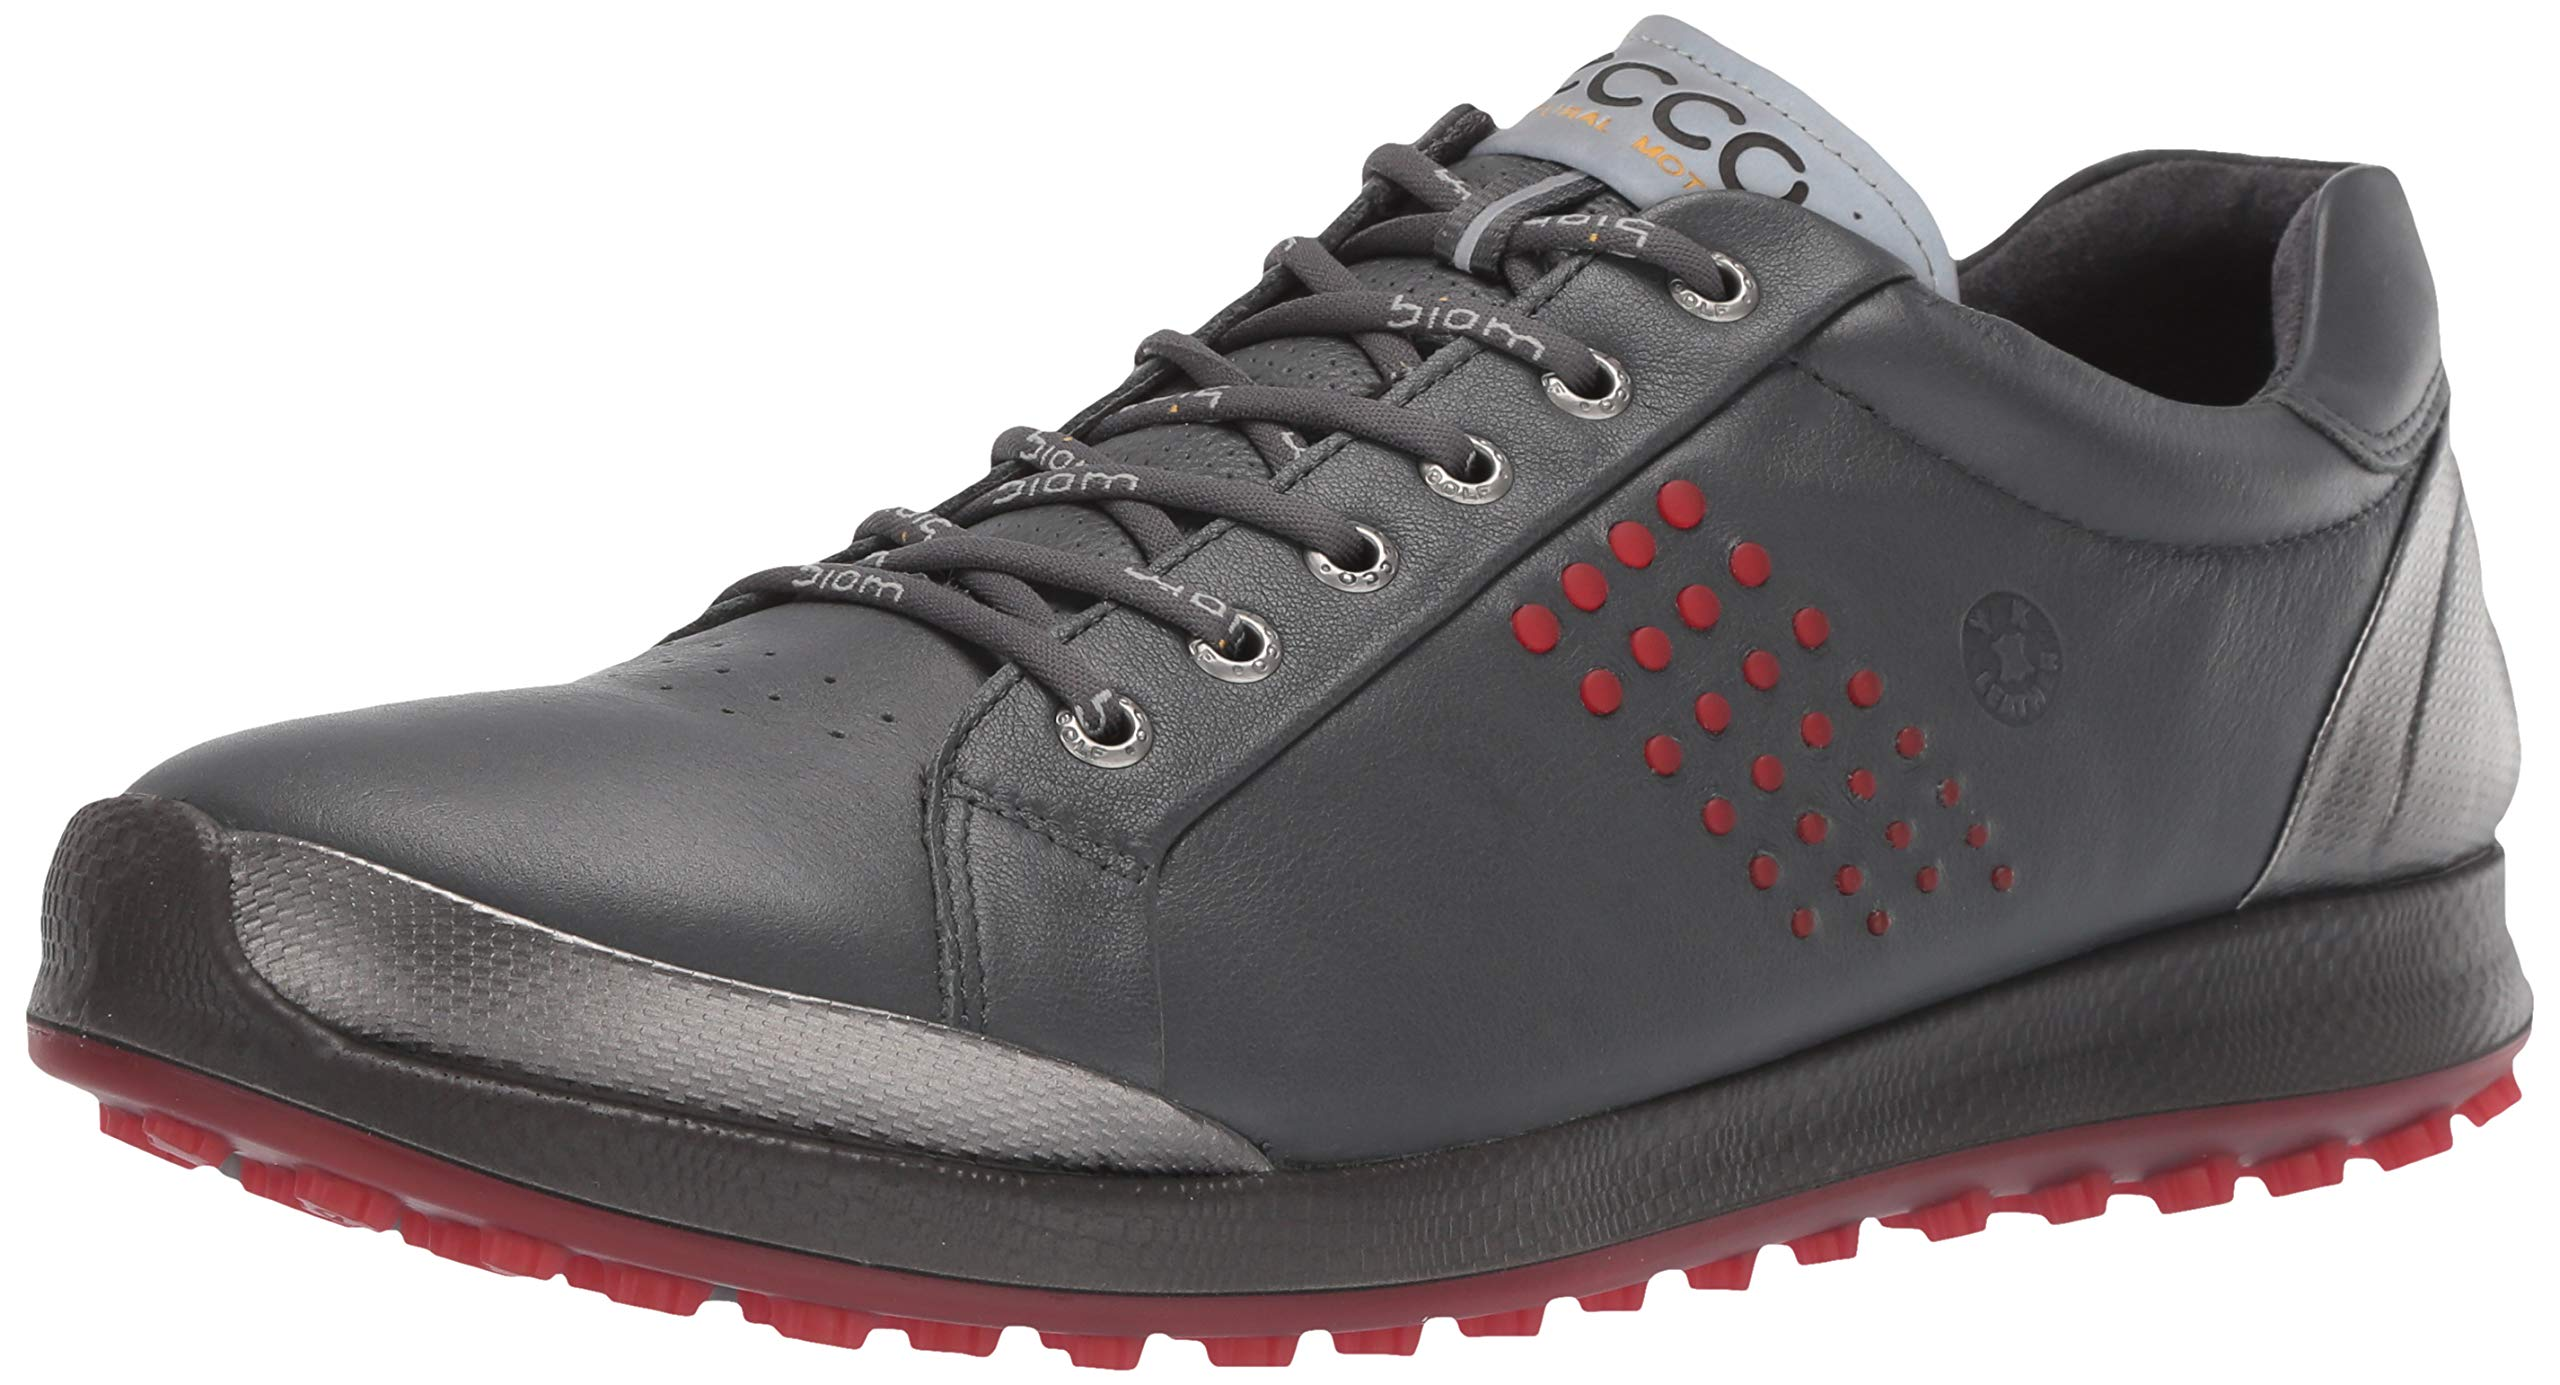 ECCO Men's Biom Hybrid 2 Hydromax Golf Shoe, Dark Shadow Yak Leather, 14 M US by ECCO